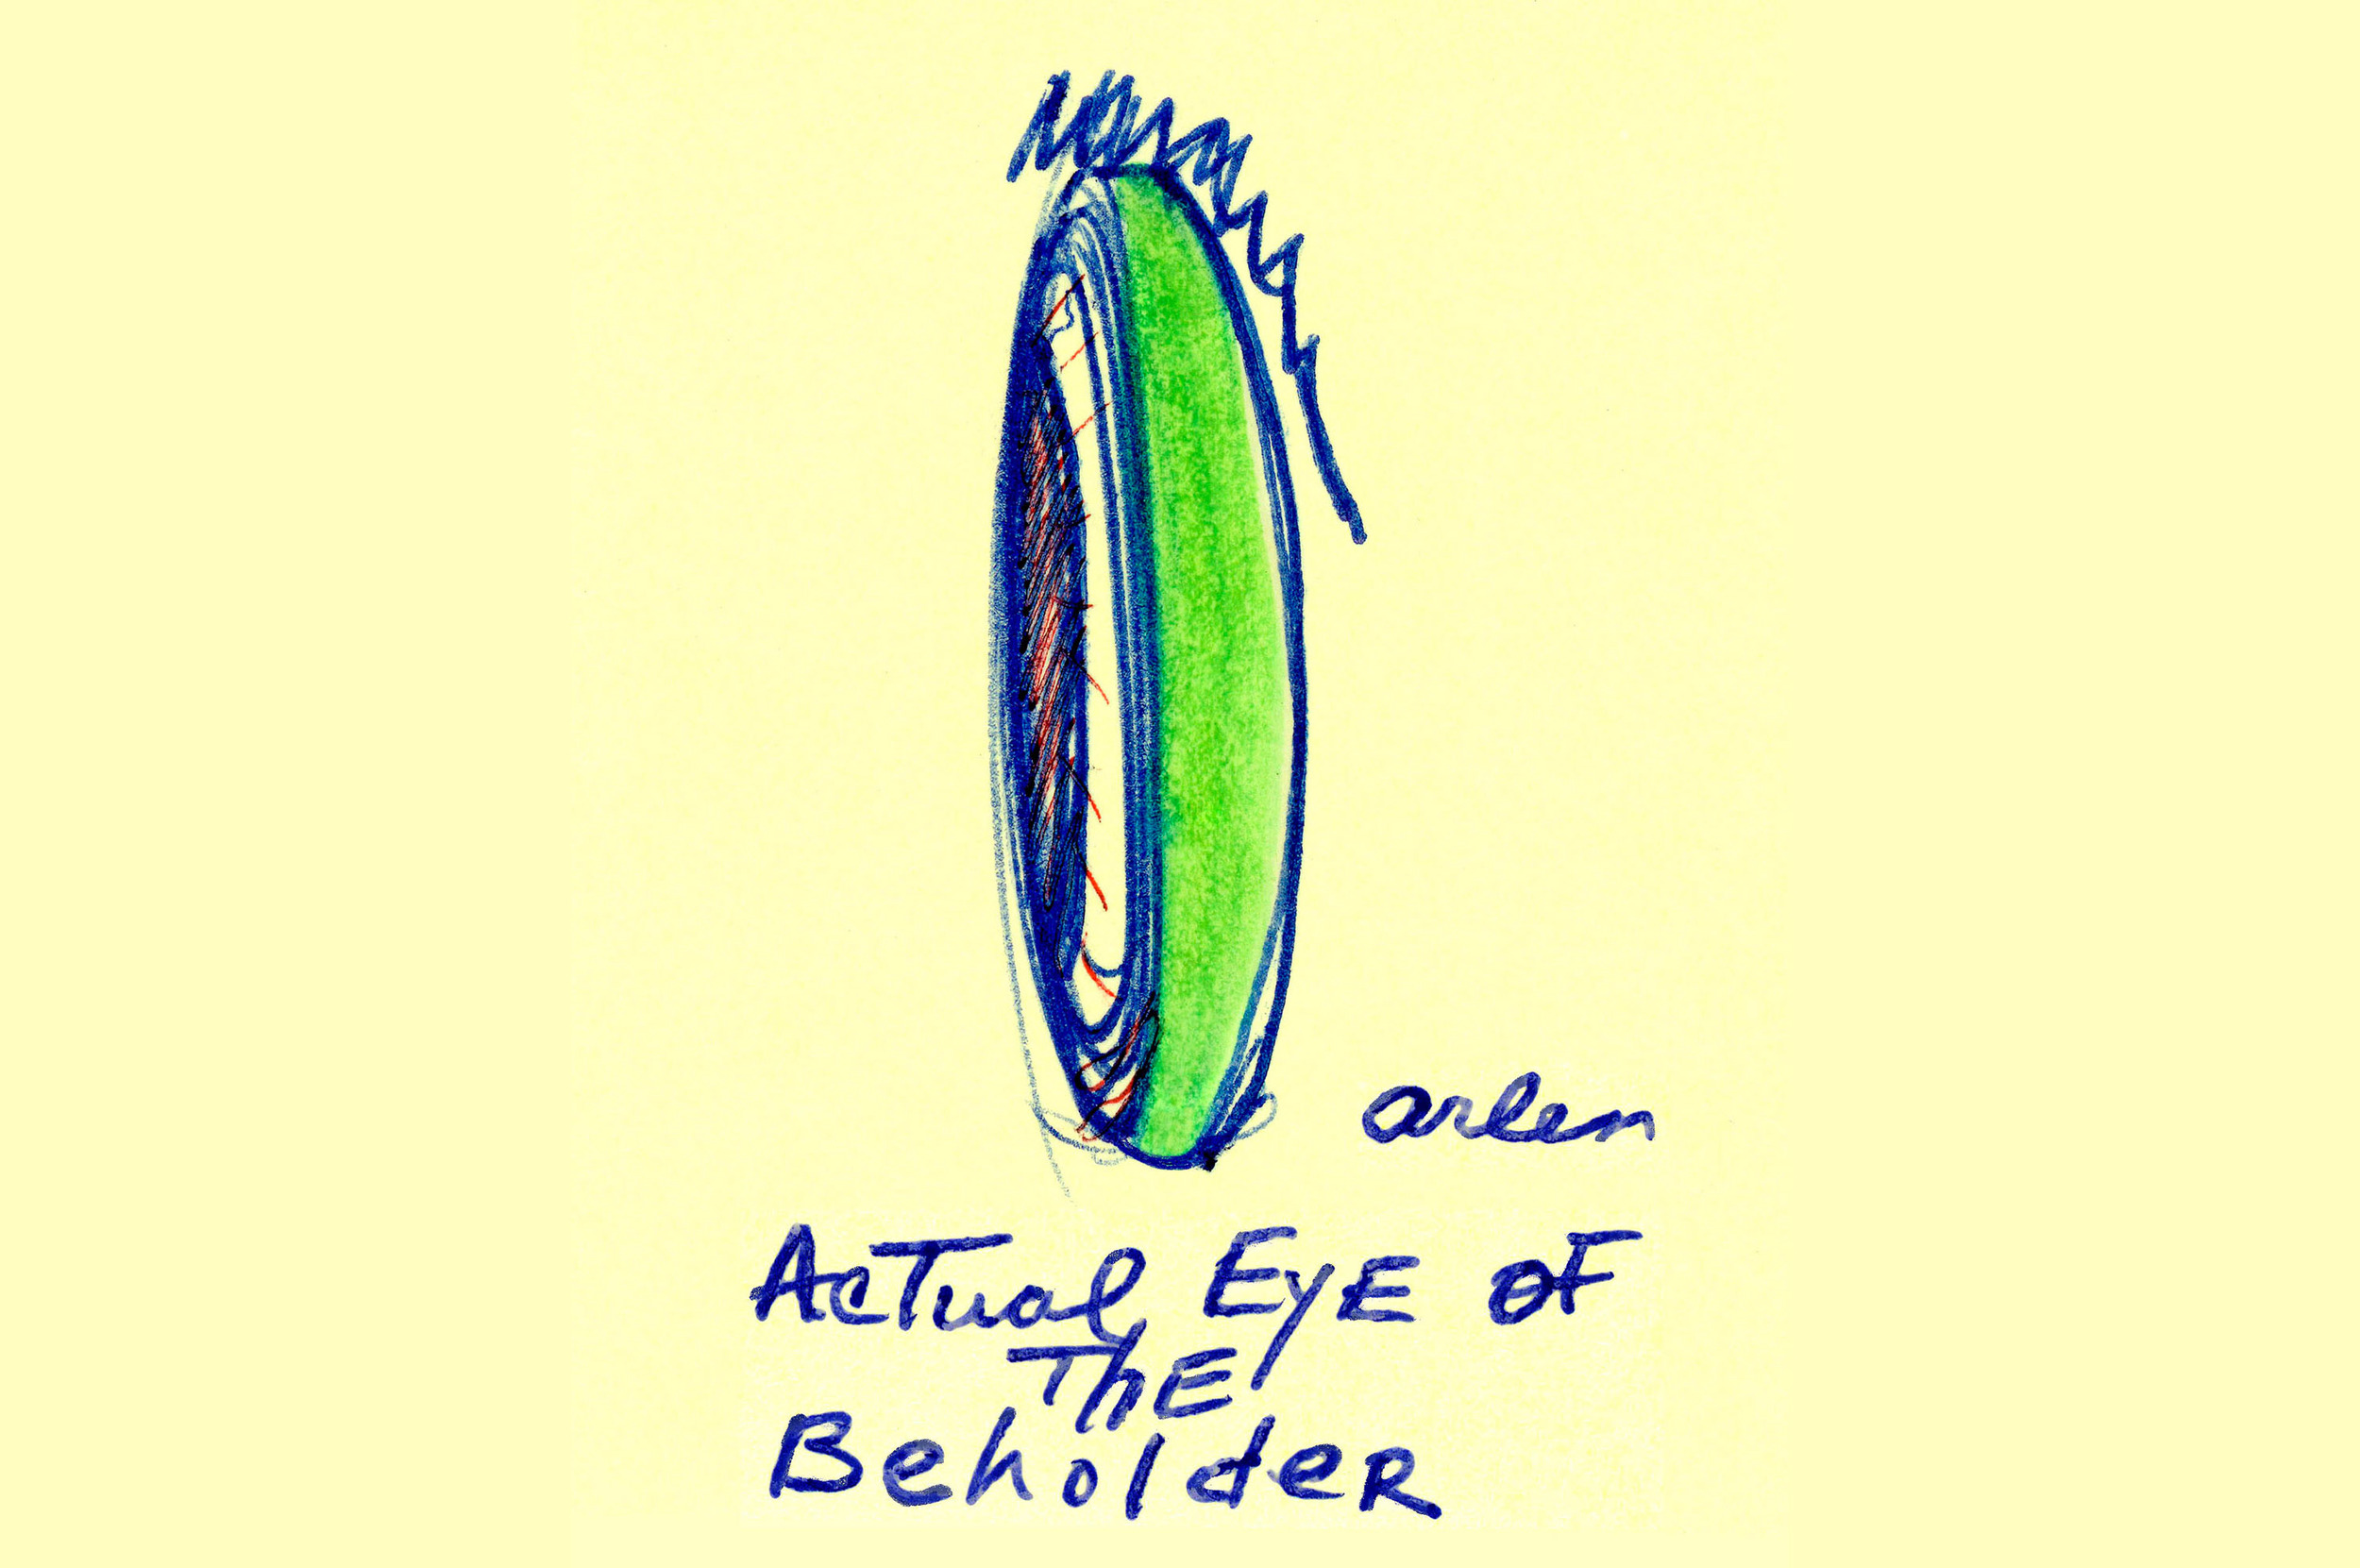 gllry_53-Actual-Eye-of-the-Beholder_same-sz.jpg